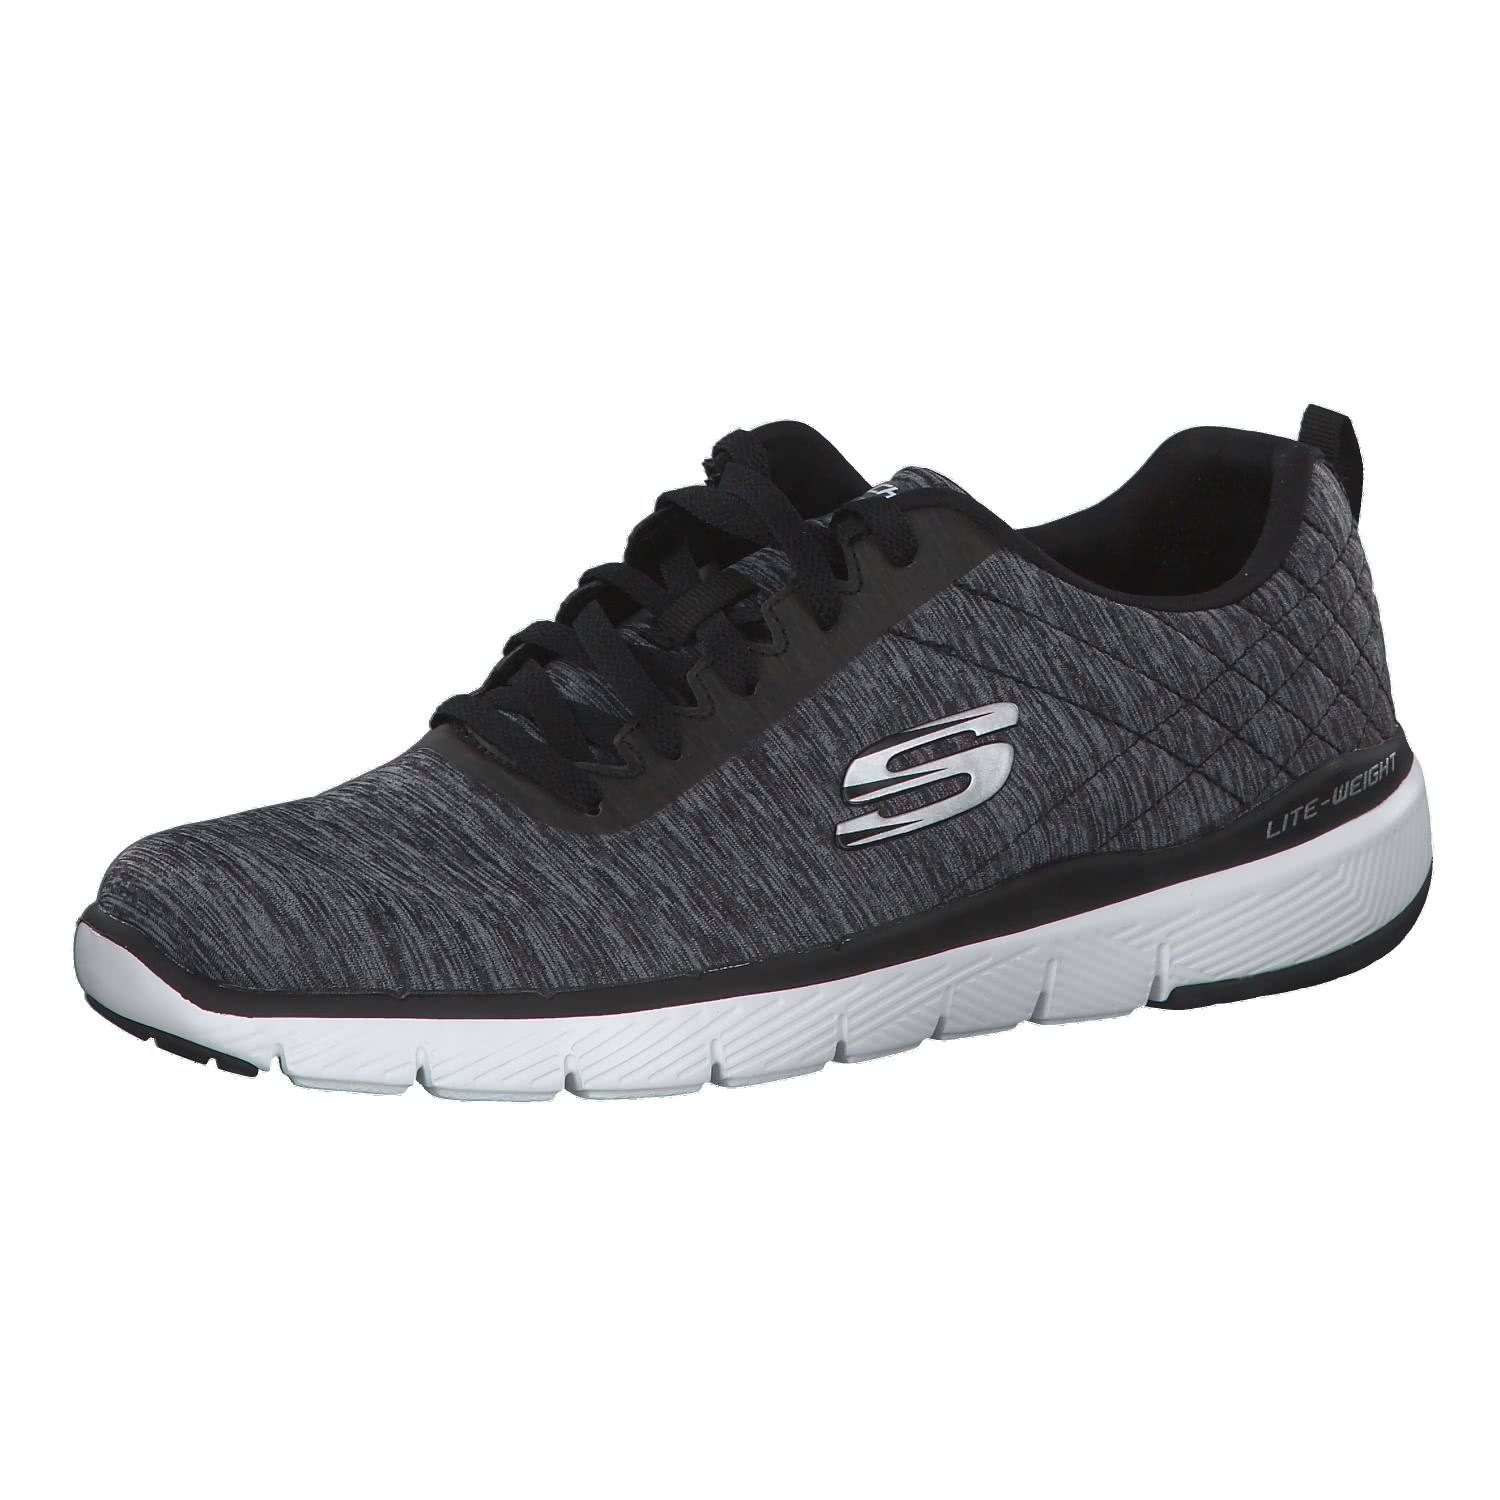 Skechers Herren Herren Herren Flex Advantage 3.0 Jection